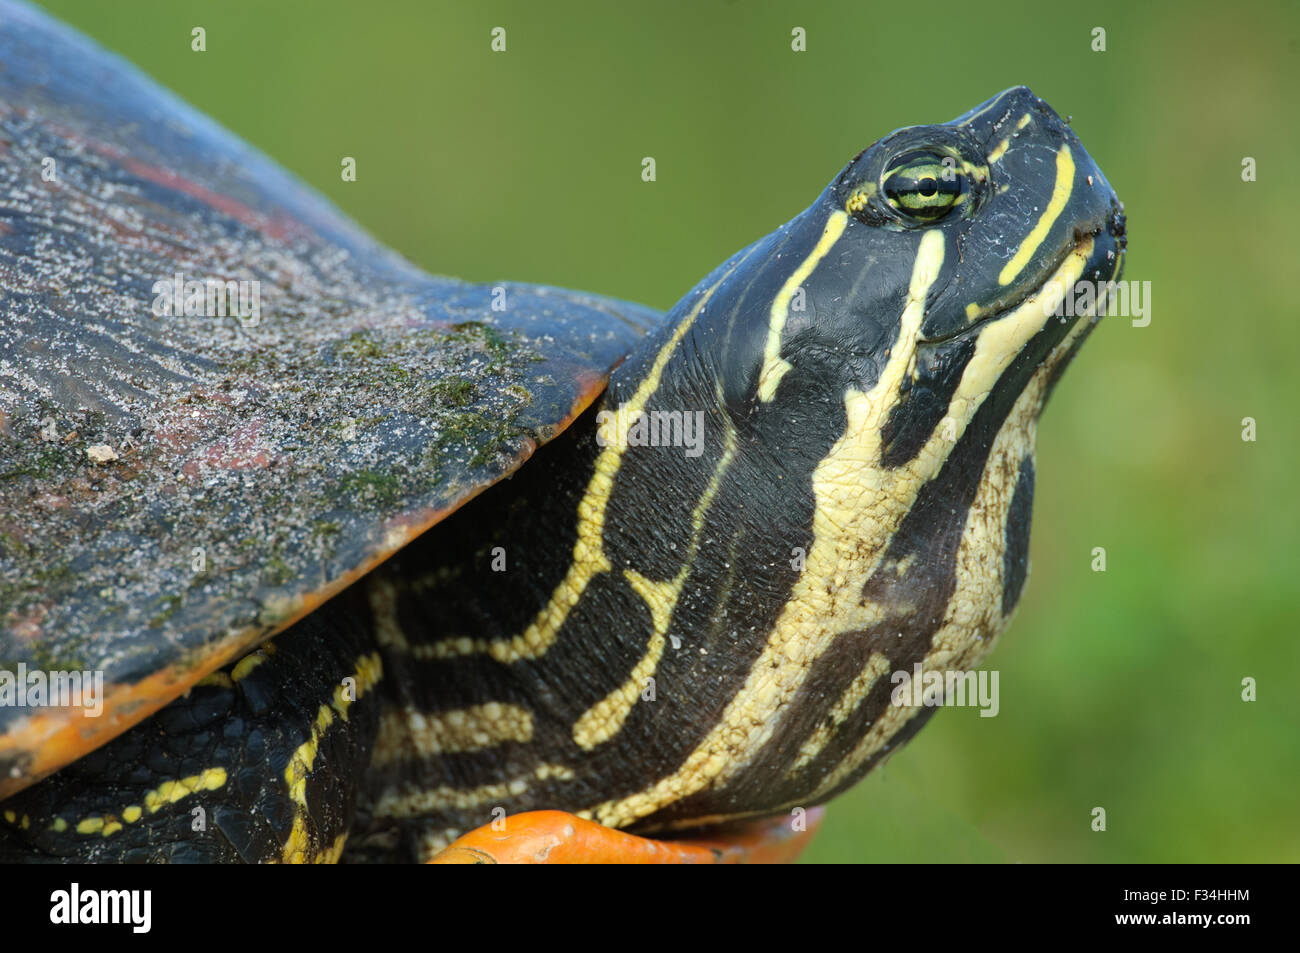 Close-up of head of Florida red-bellied cooter, AKA Florida redbelly turtle (Pseudemys nelsoni) at Green Cay Wetlands, Stock Photo